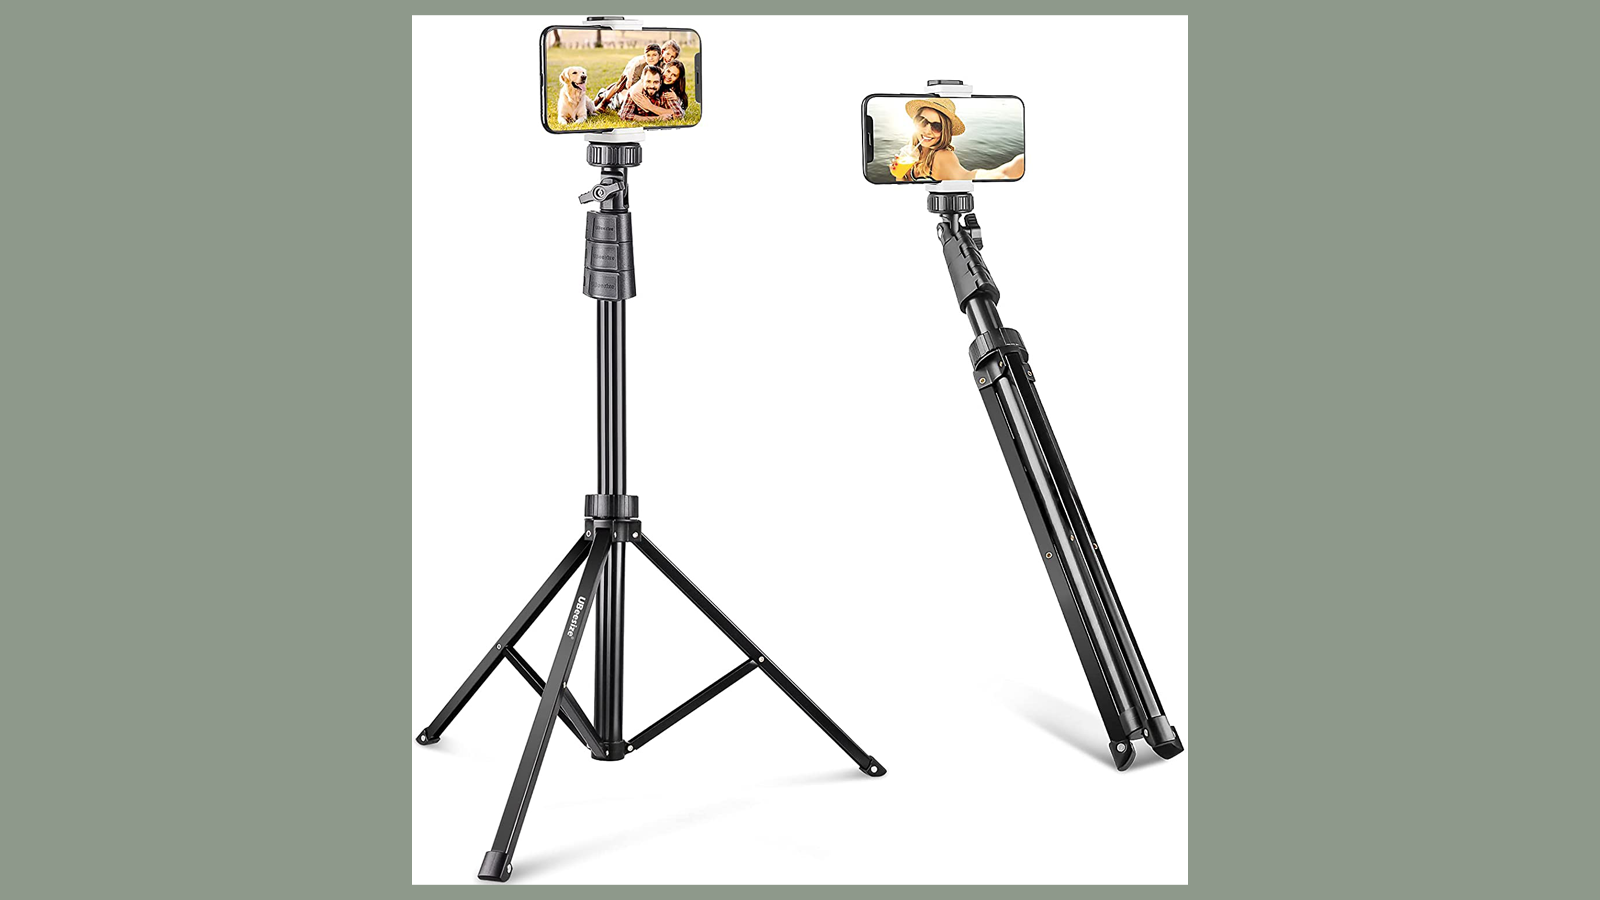 Get Your Selfie on (easily) With This Phone Tripod-Slash-Selfie Stick